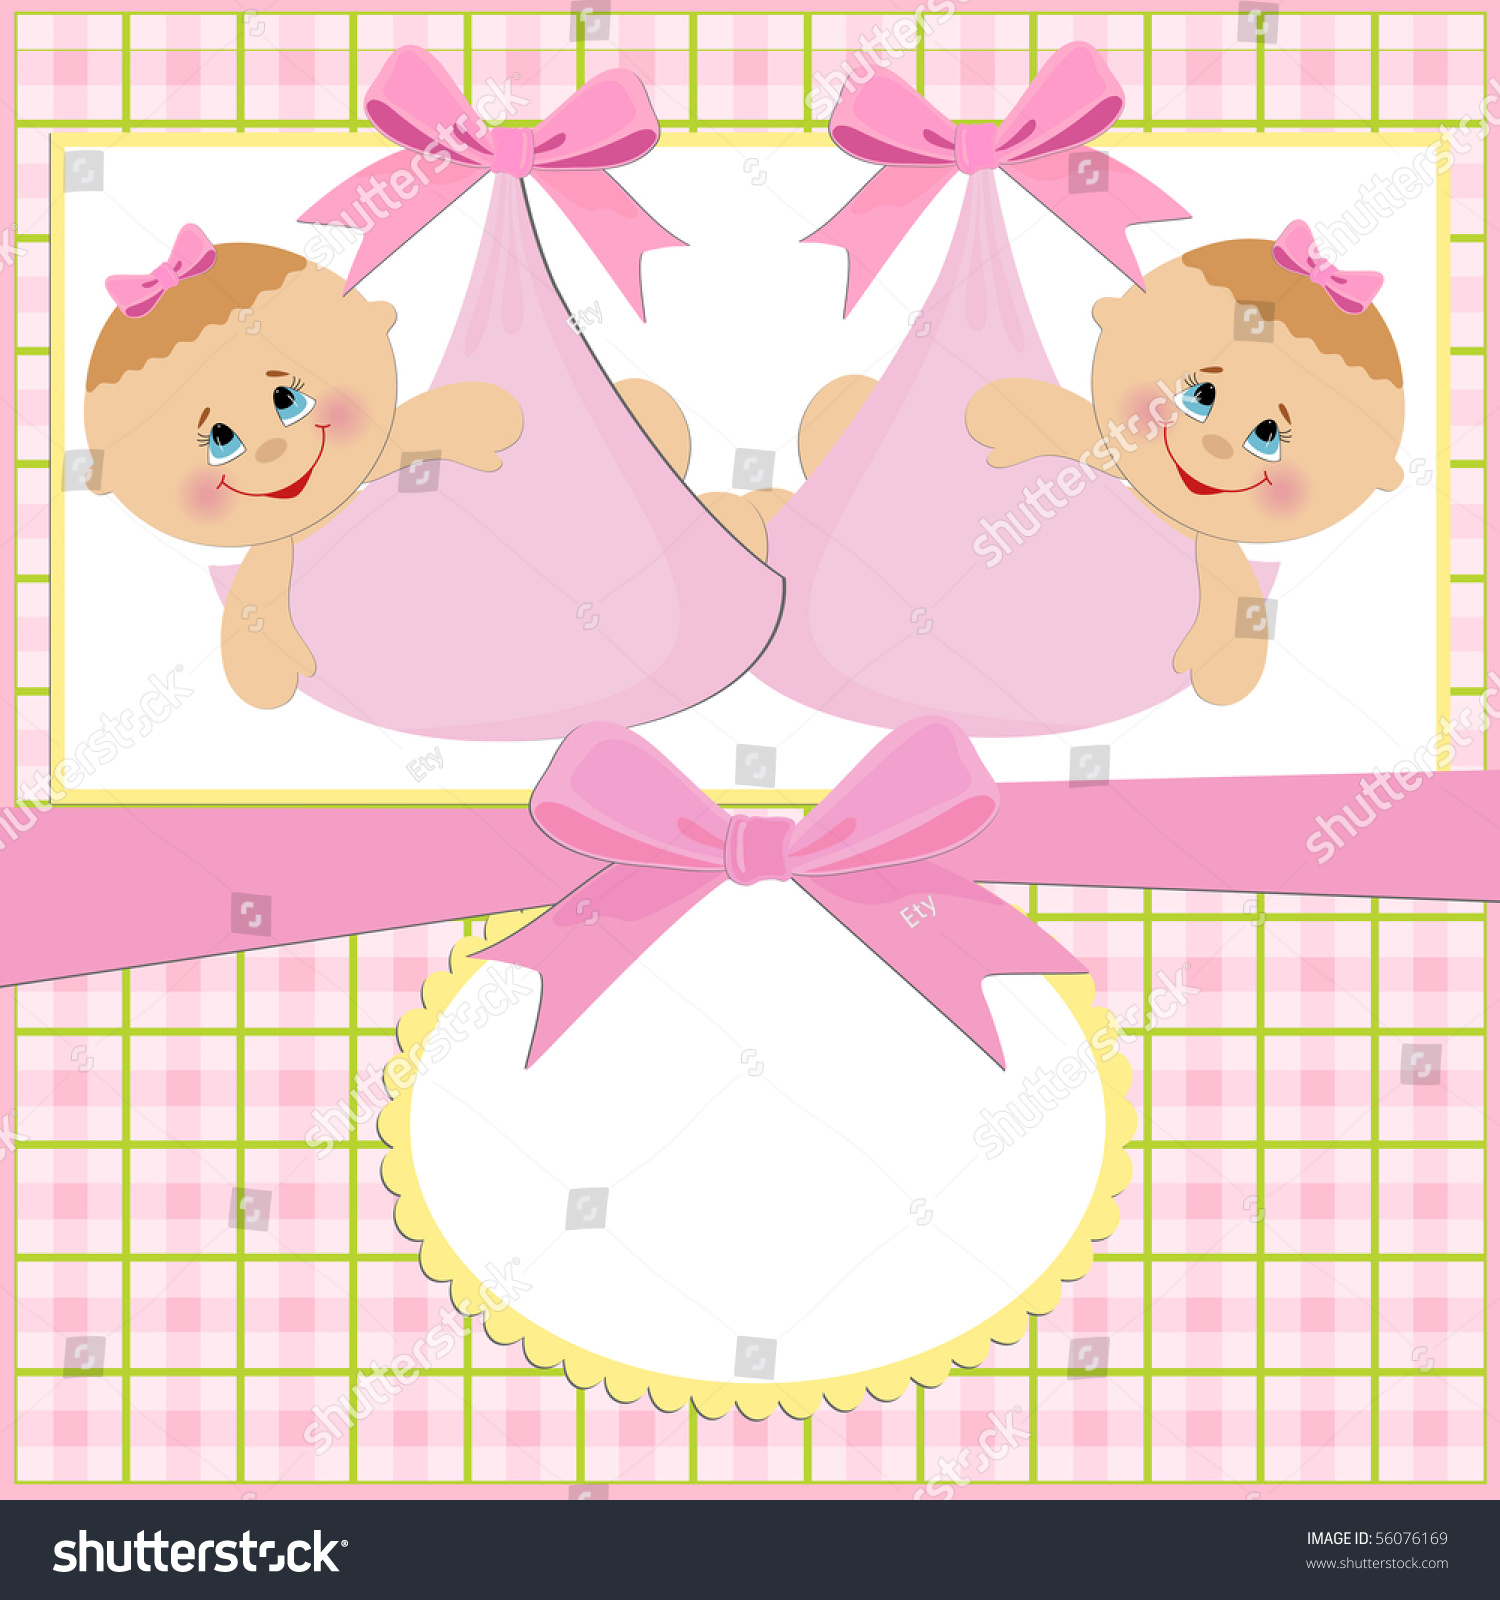 Baby Greetings Card Twins Girls Stock Illustration 56076169